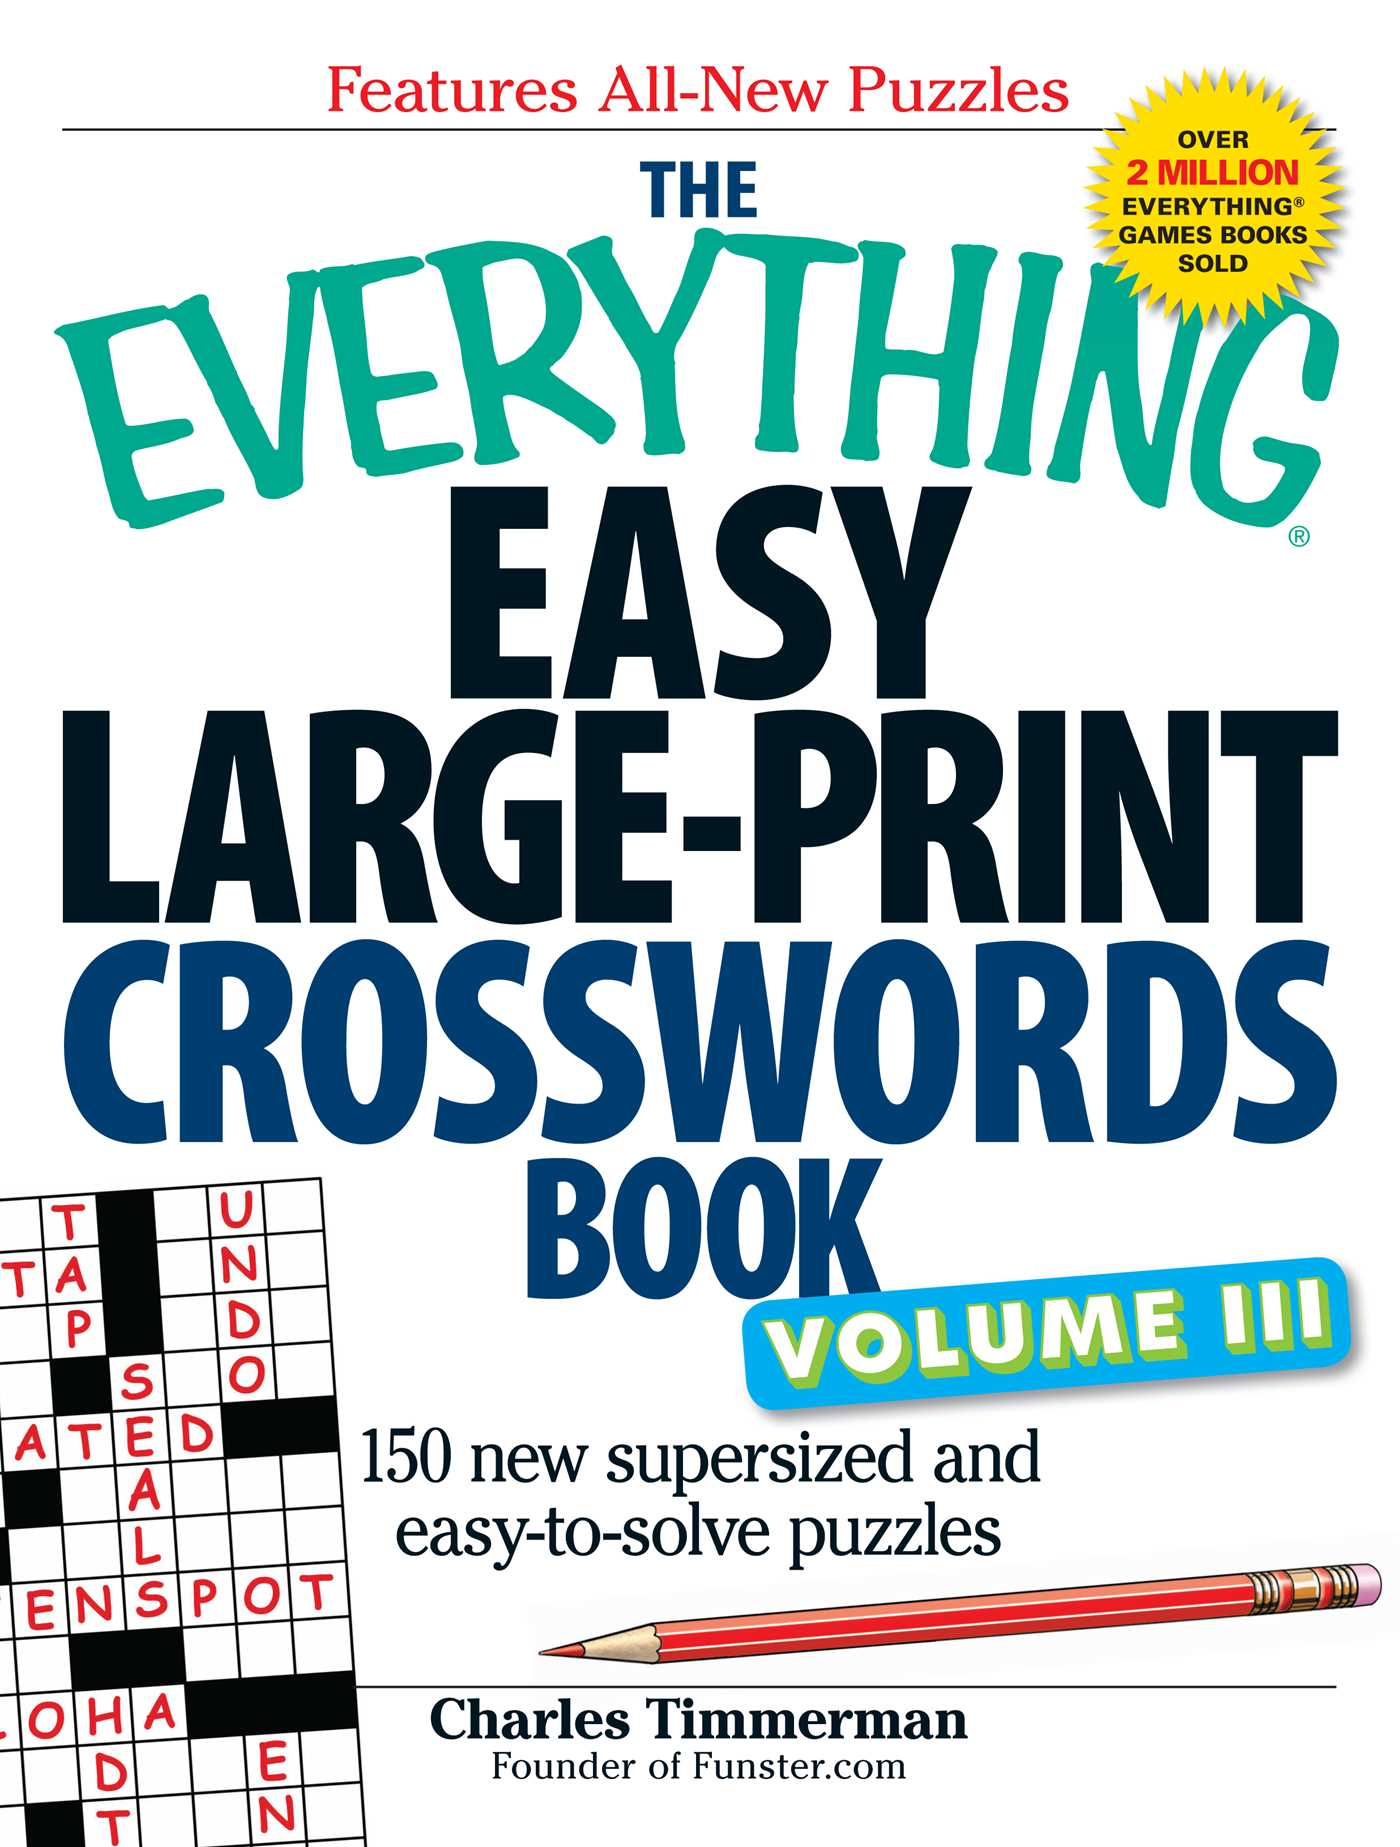 The everything easy large print crosswords book volume iii 9781440509728 hr